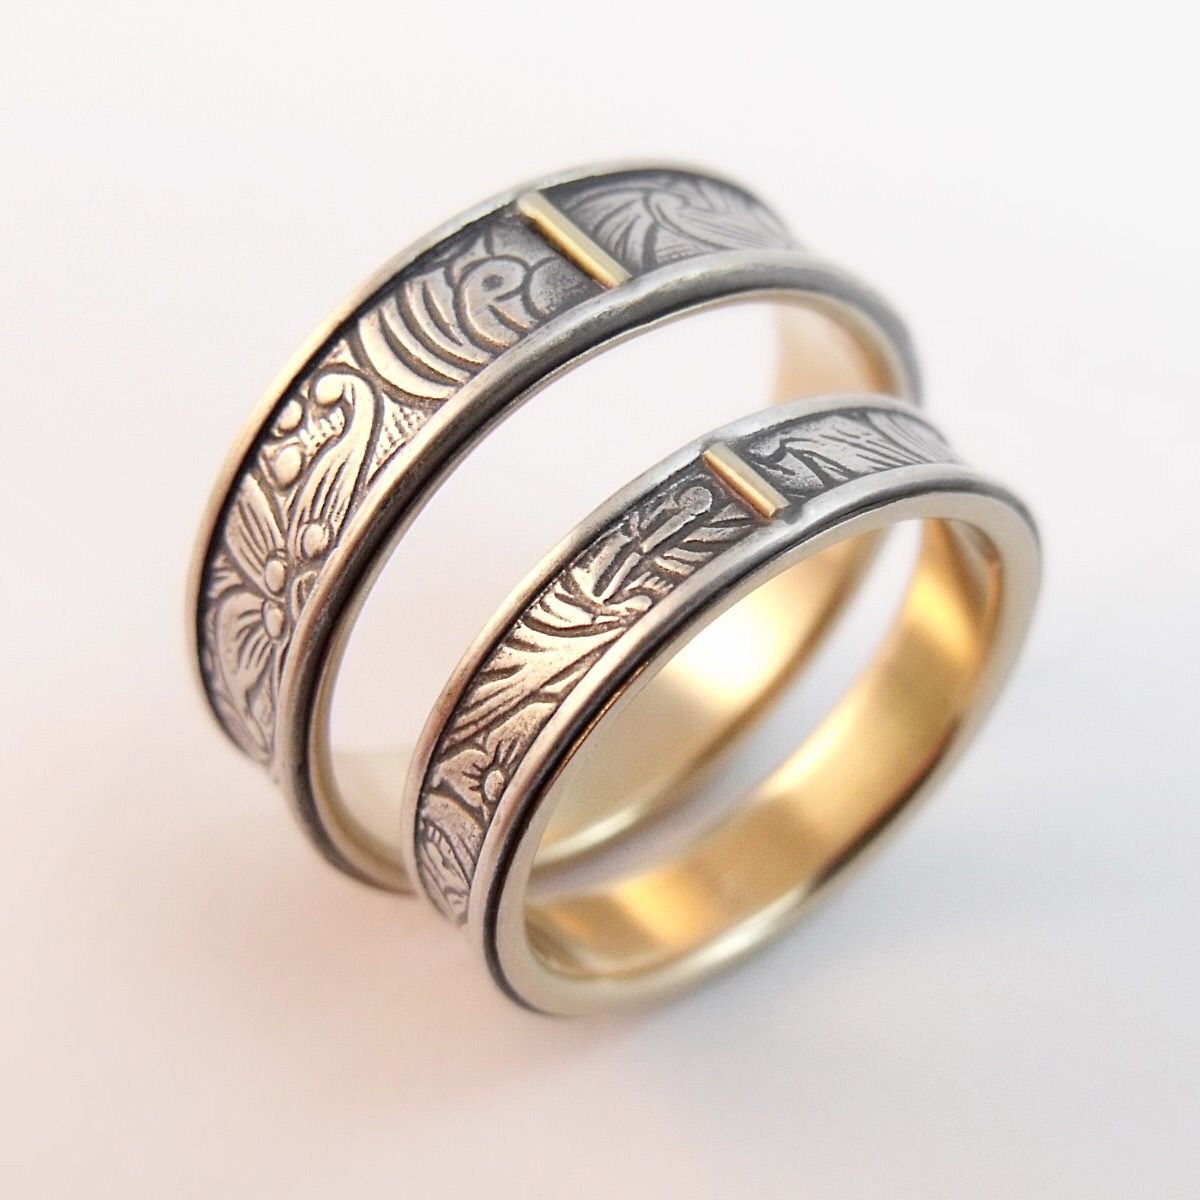 Sunflower wedding band set. Sterling silver inlay rings